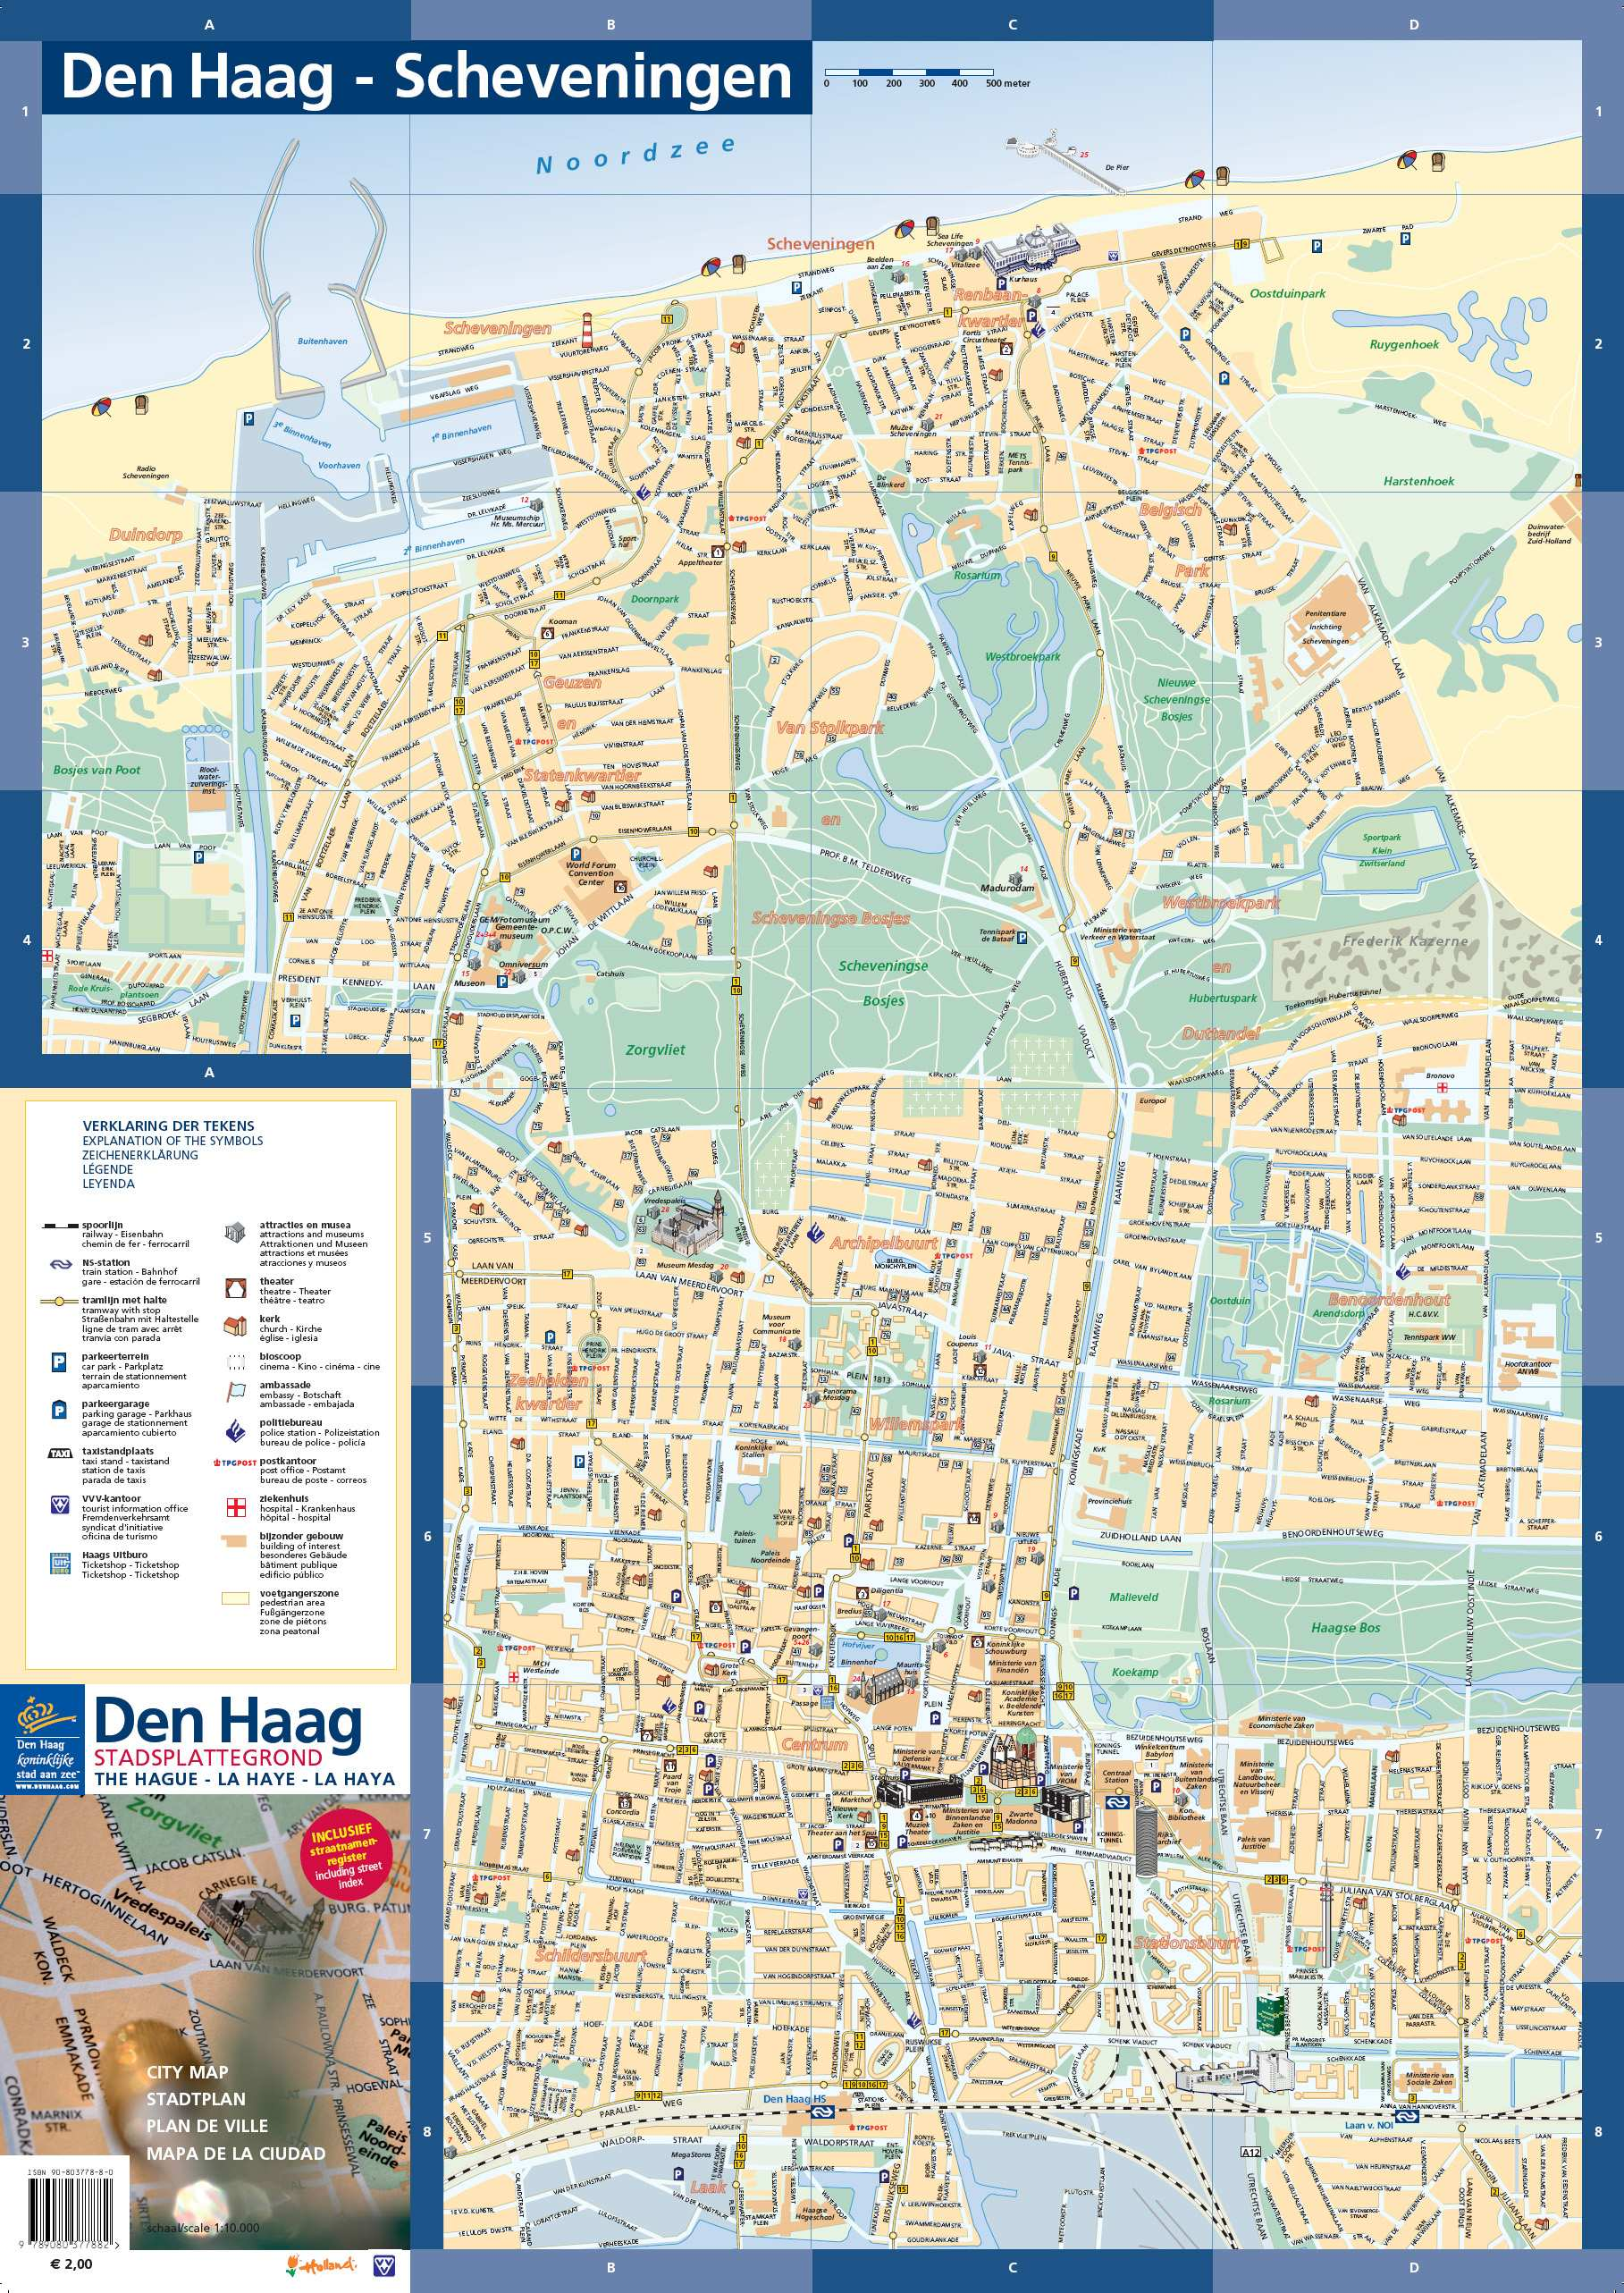 The Hague Tourist Map Large The Hague Maps for Free Download and Print | High Resolution